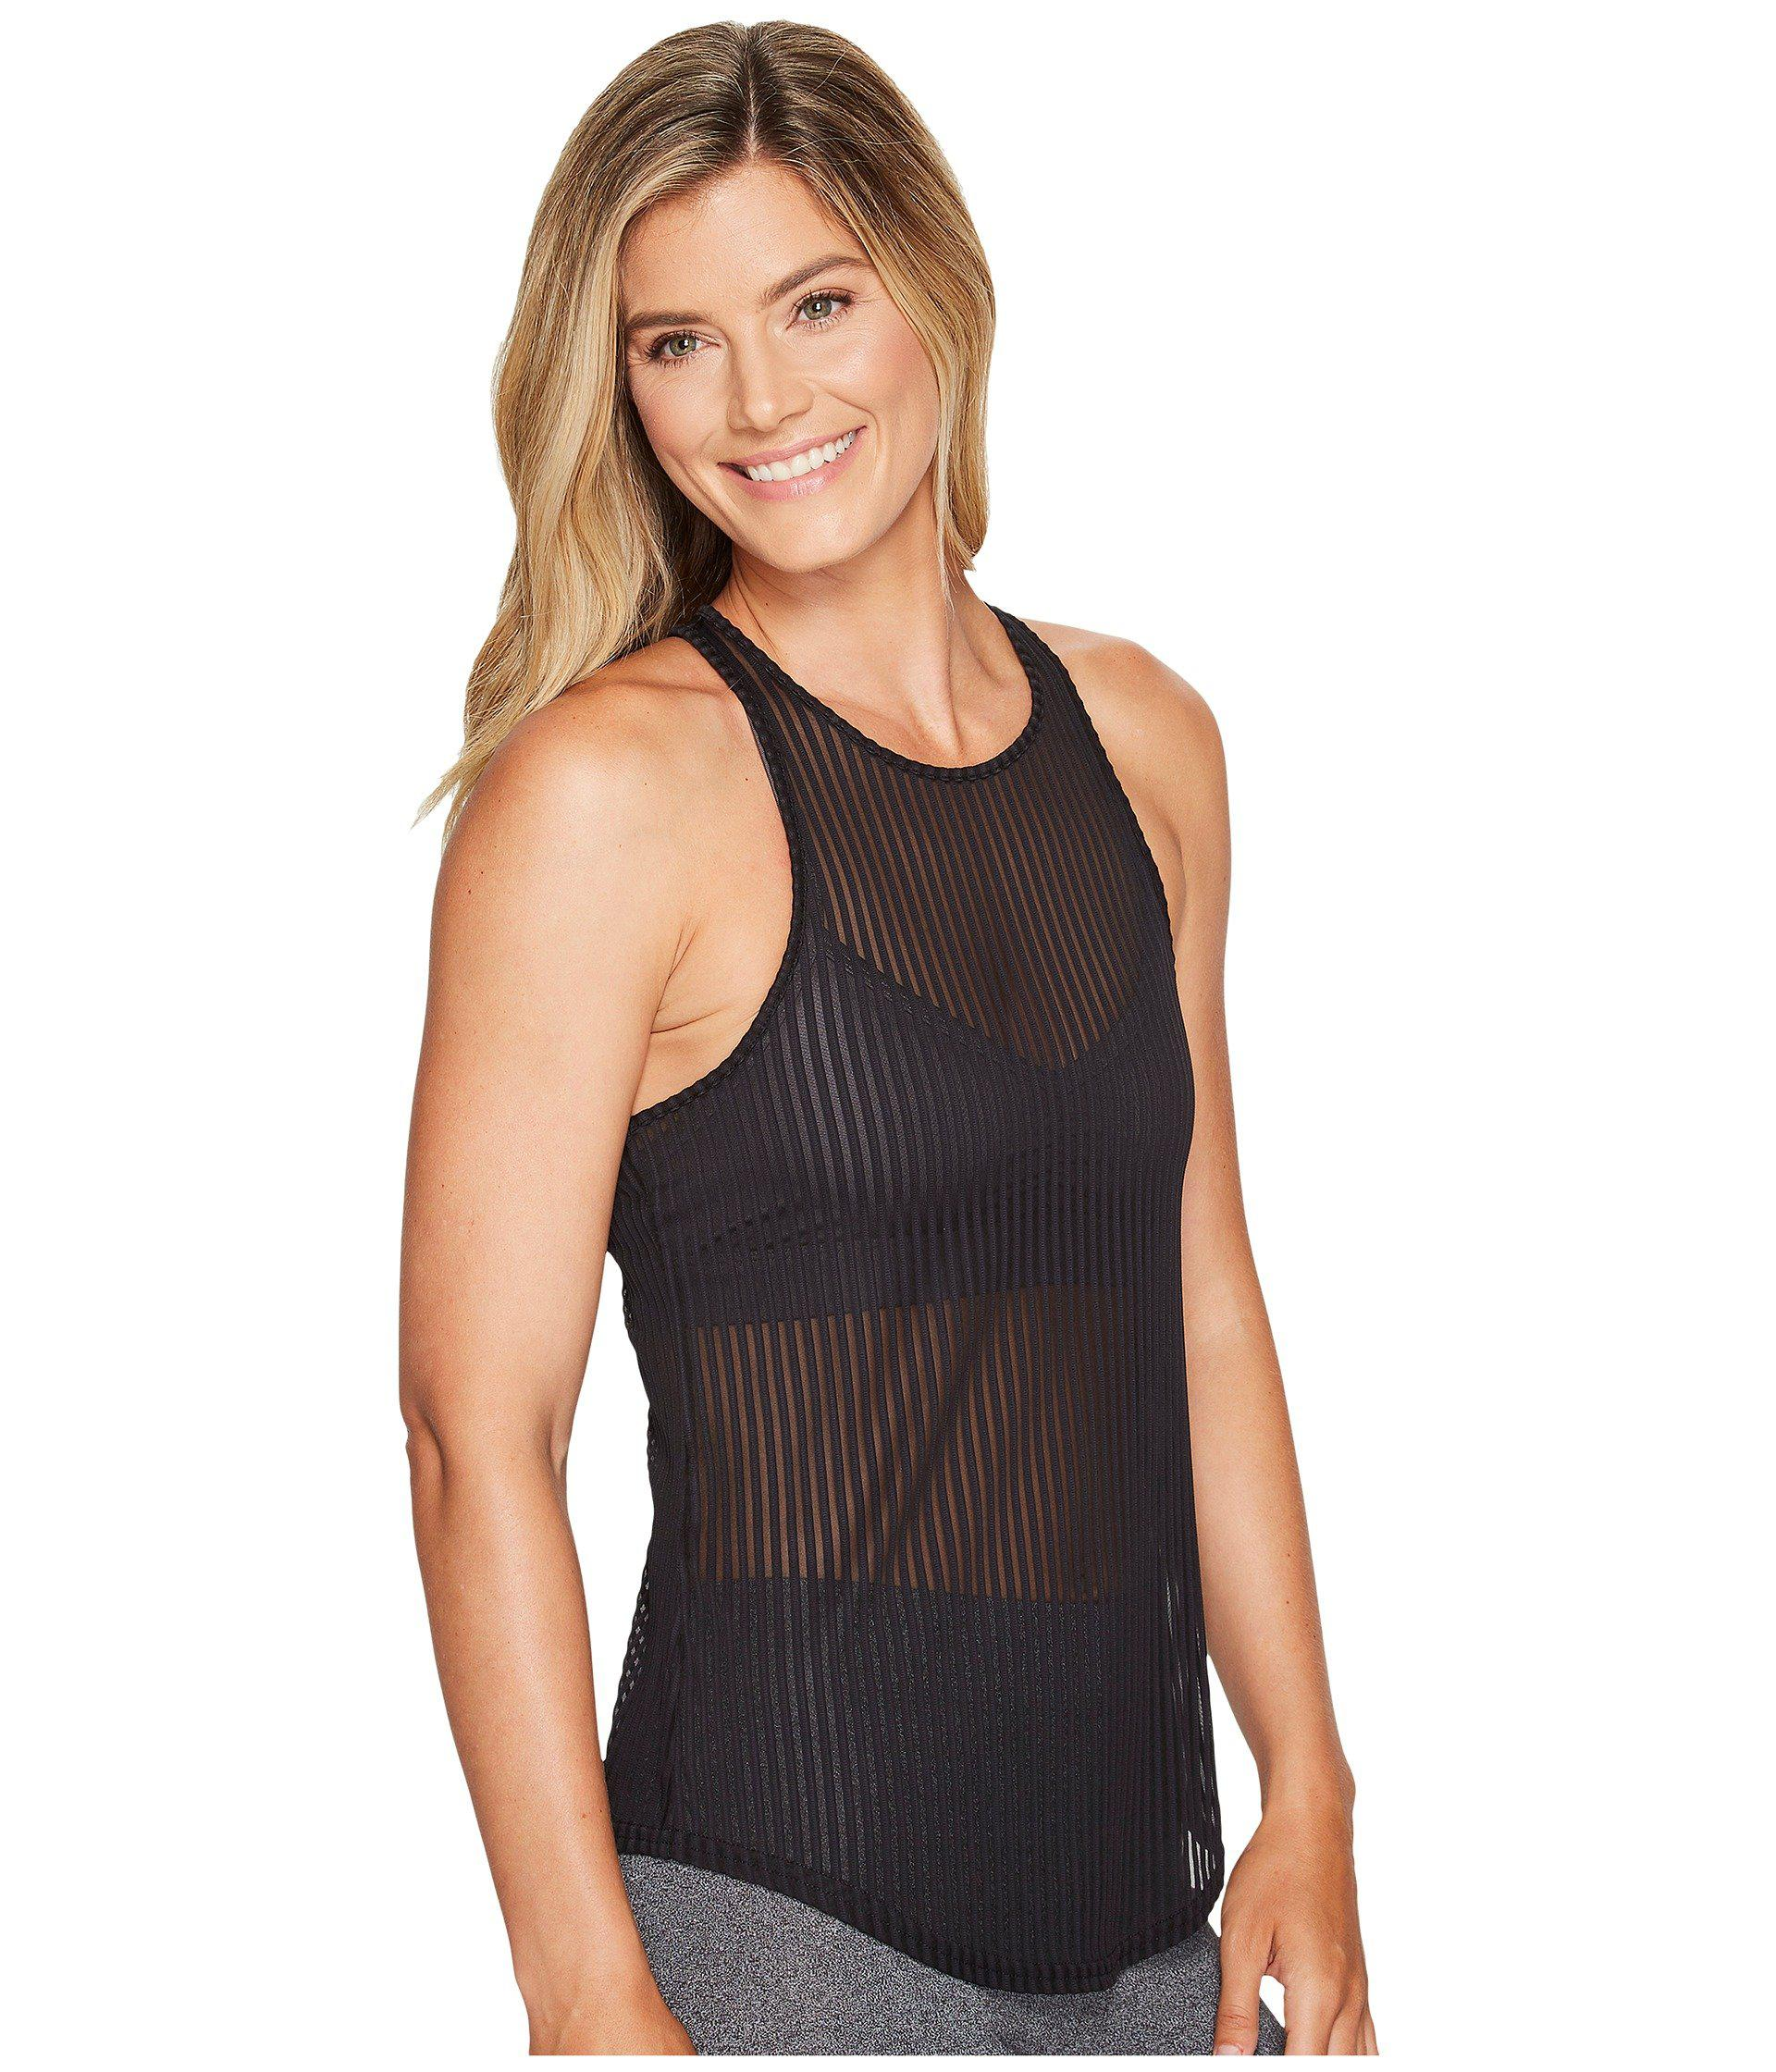 8f4a155ed0 Lyst - Alo Yoga Essence Tank Top in Black